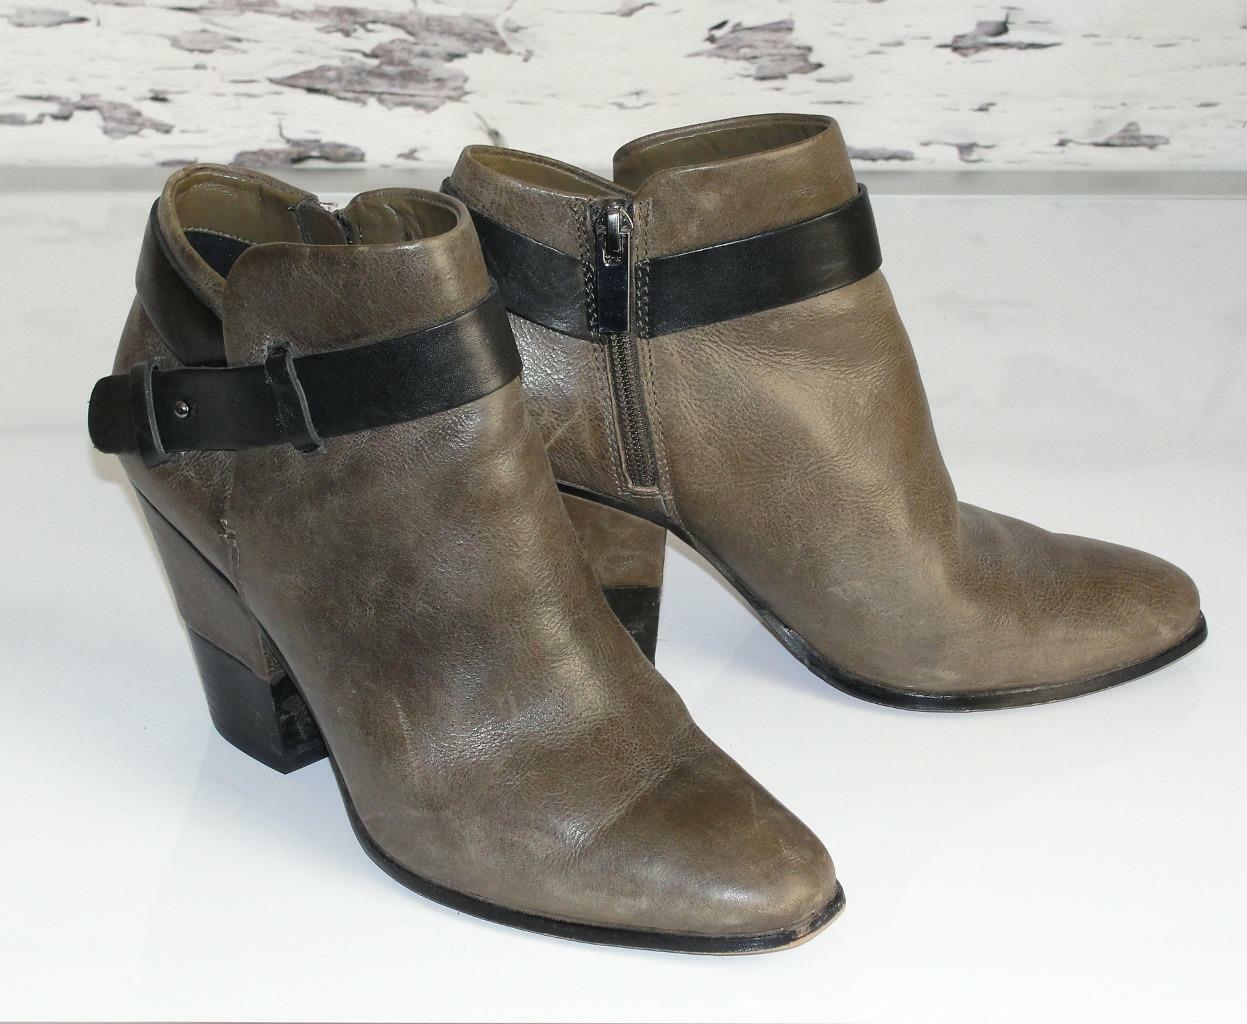 DOLCE VITADISTRESSED BROWNLEATHER BELTED ANKLE FASHION BOOTS BOOTIES7.5